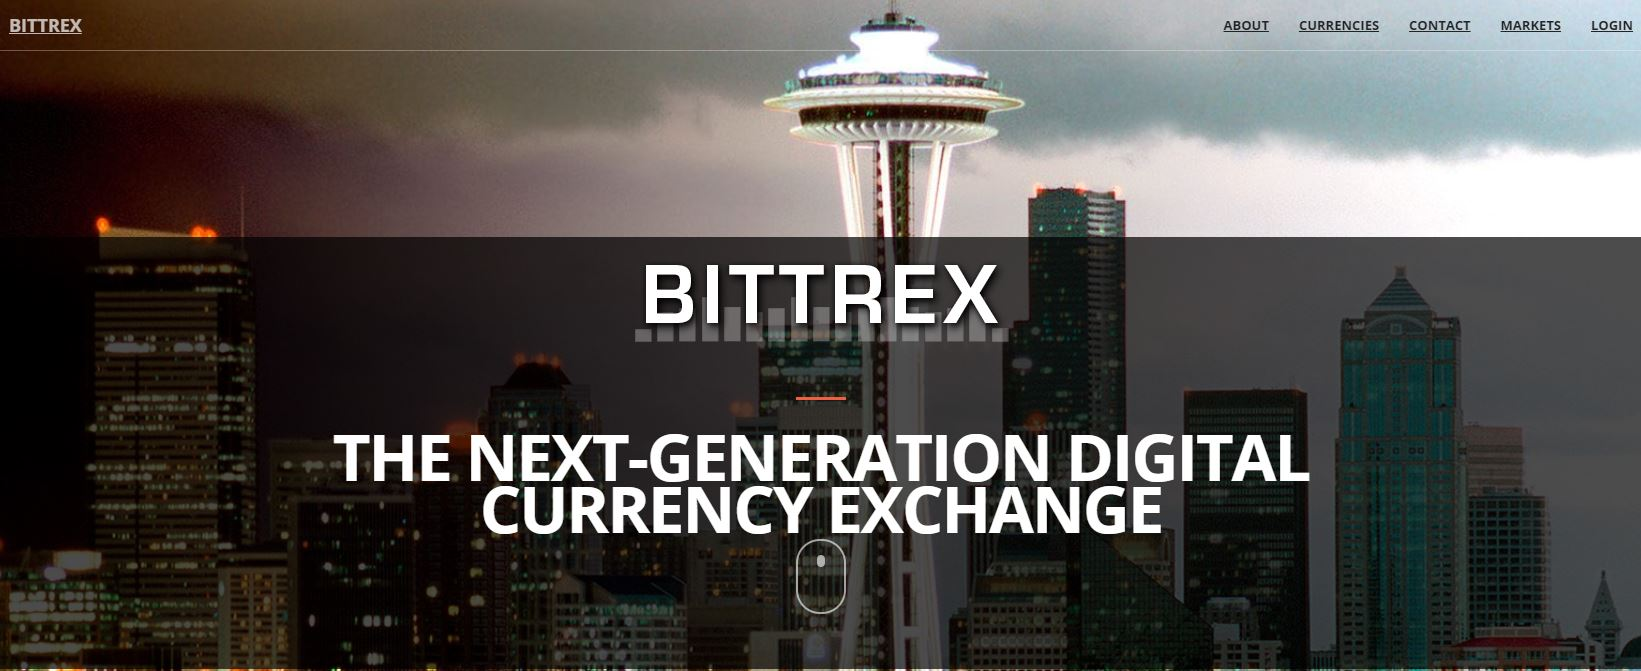 BittRex Digital Currency Exchange Review 2019 - Warrior Trading